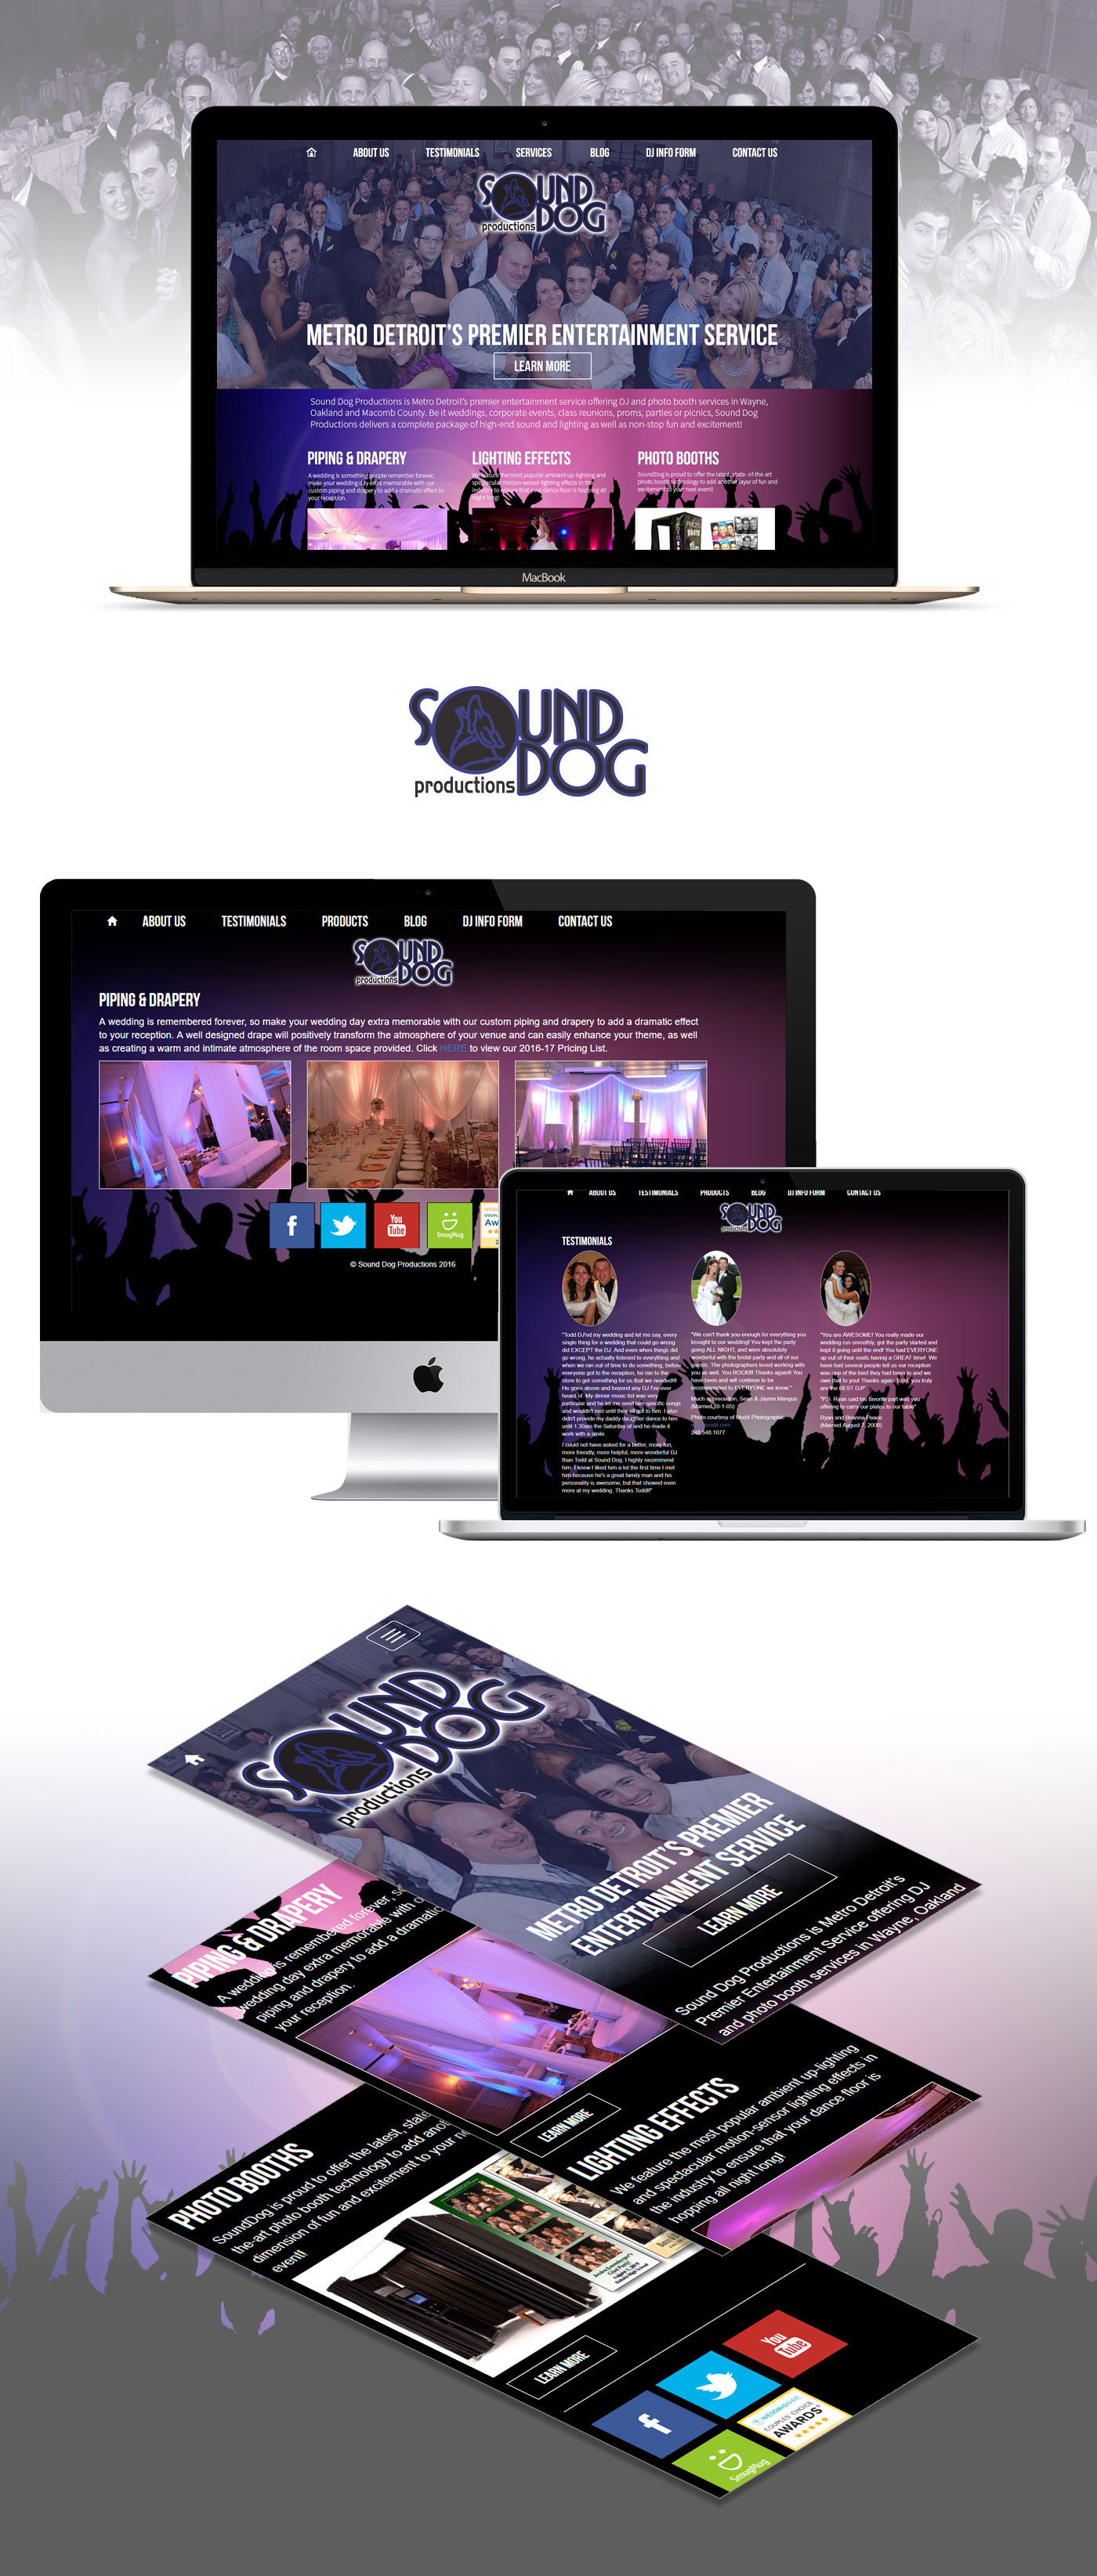 SoundDog Productions - Responsive Web Design Proposal